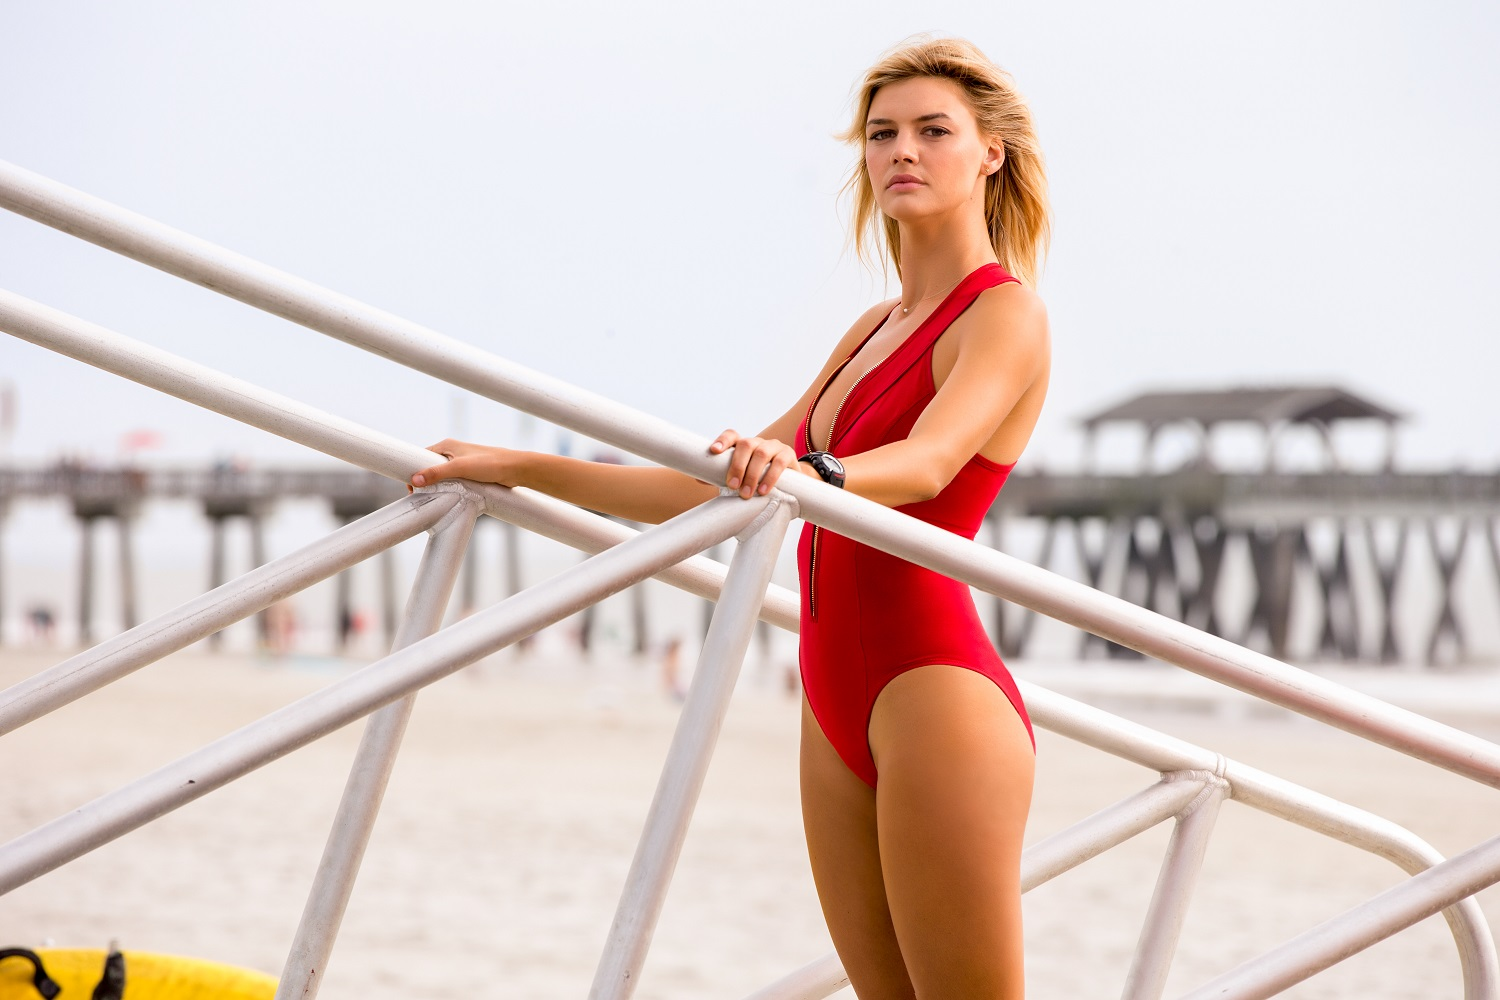 baywatch_movie_2017.jpg?fit=1500%2C1000&ssl=1